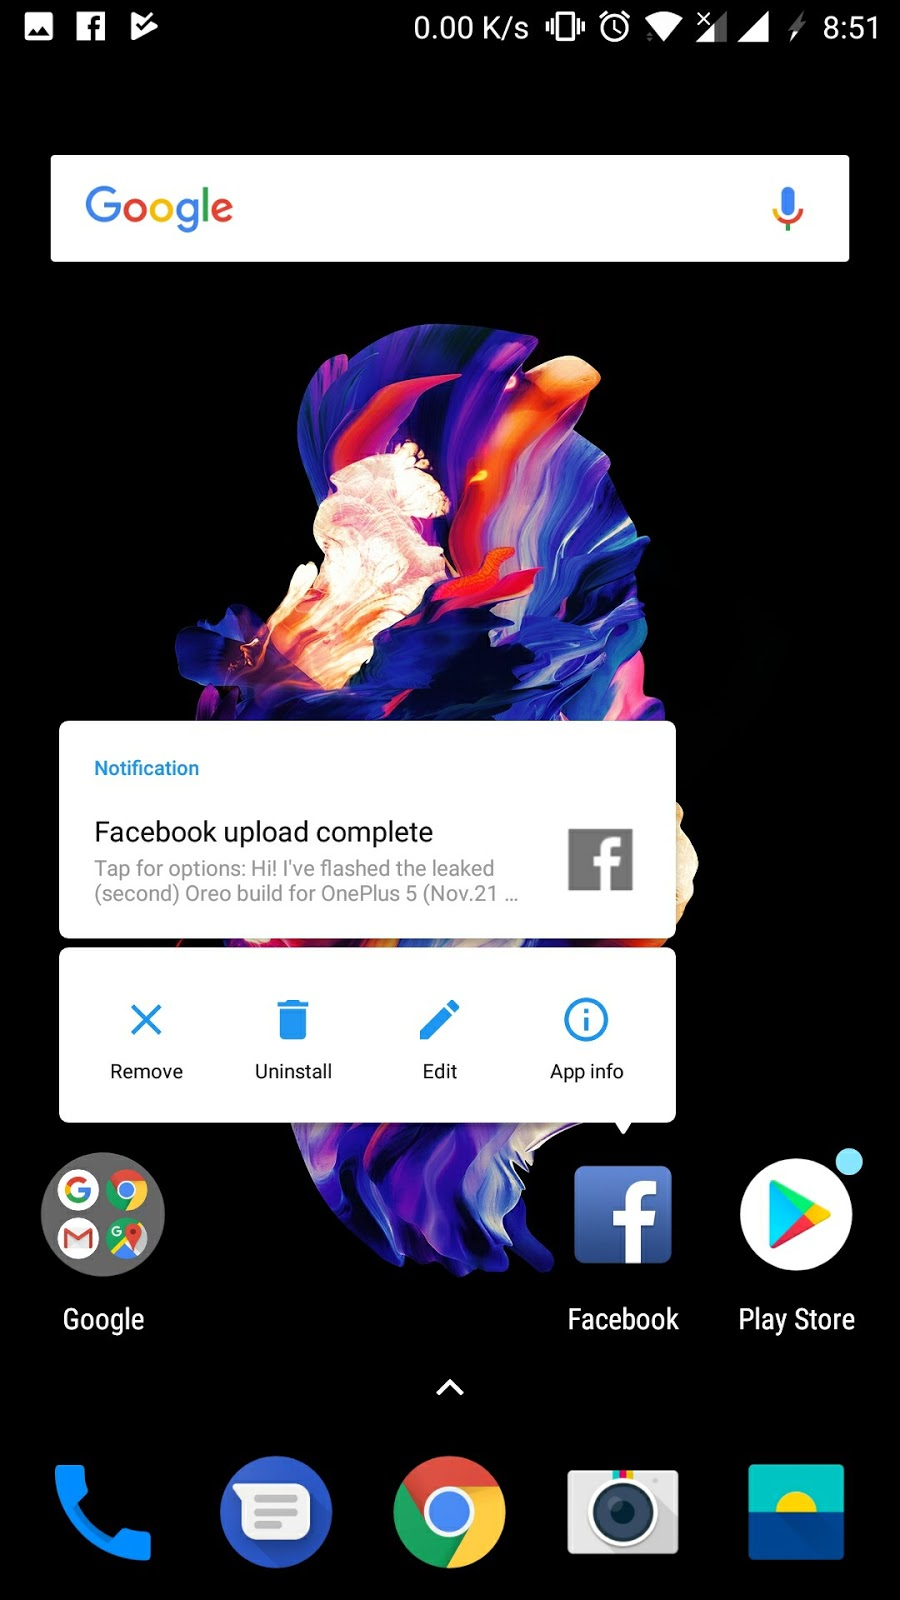 OnePlus 5 gets Face Unlock feature via Android 8.0 Beta 2 Update 8